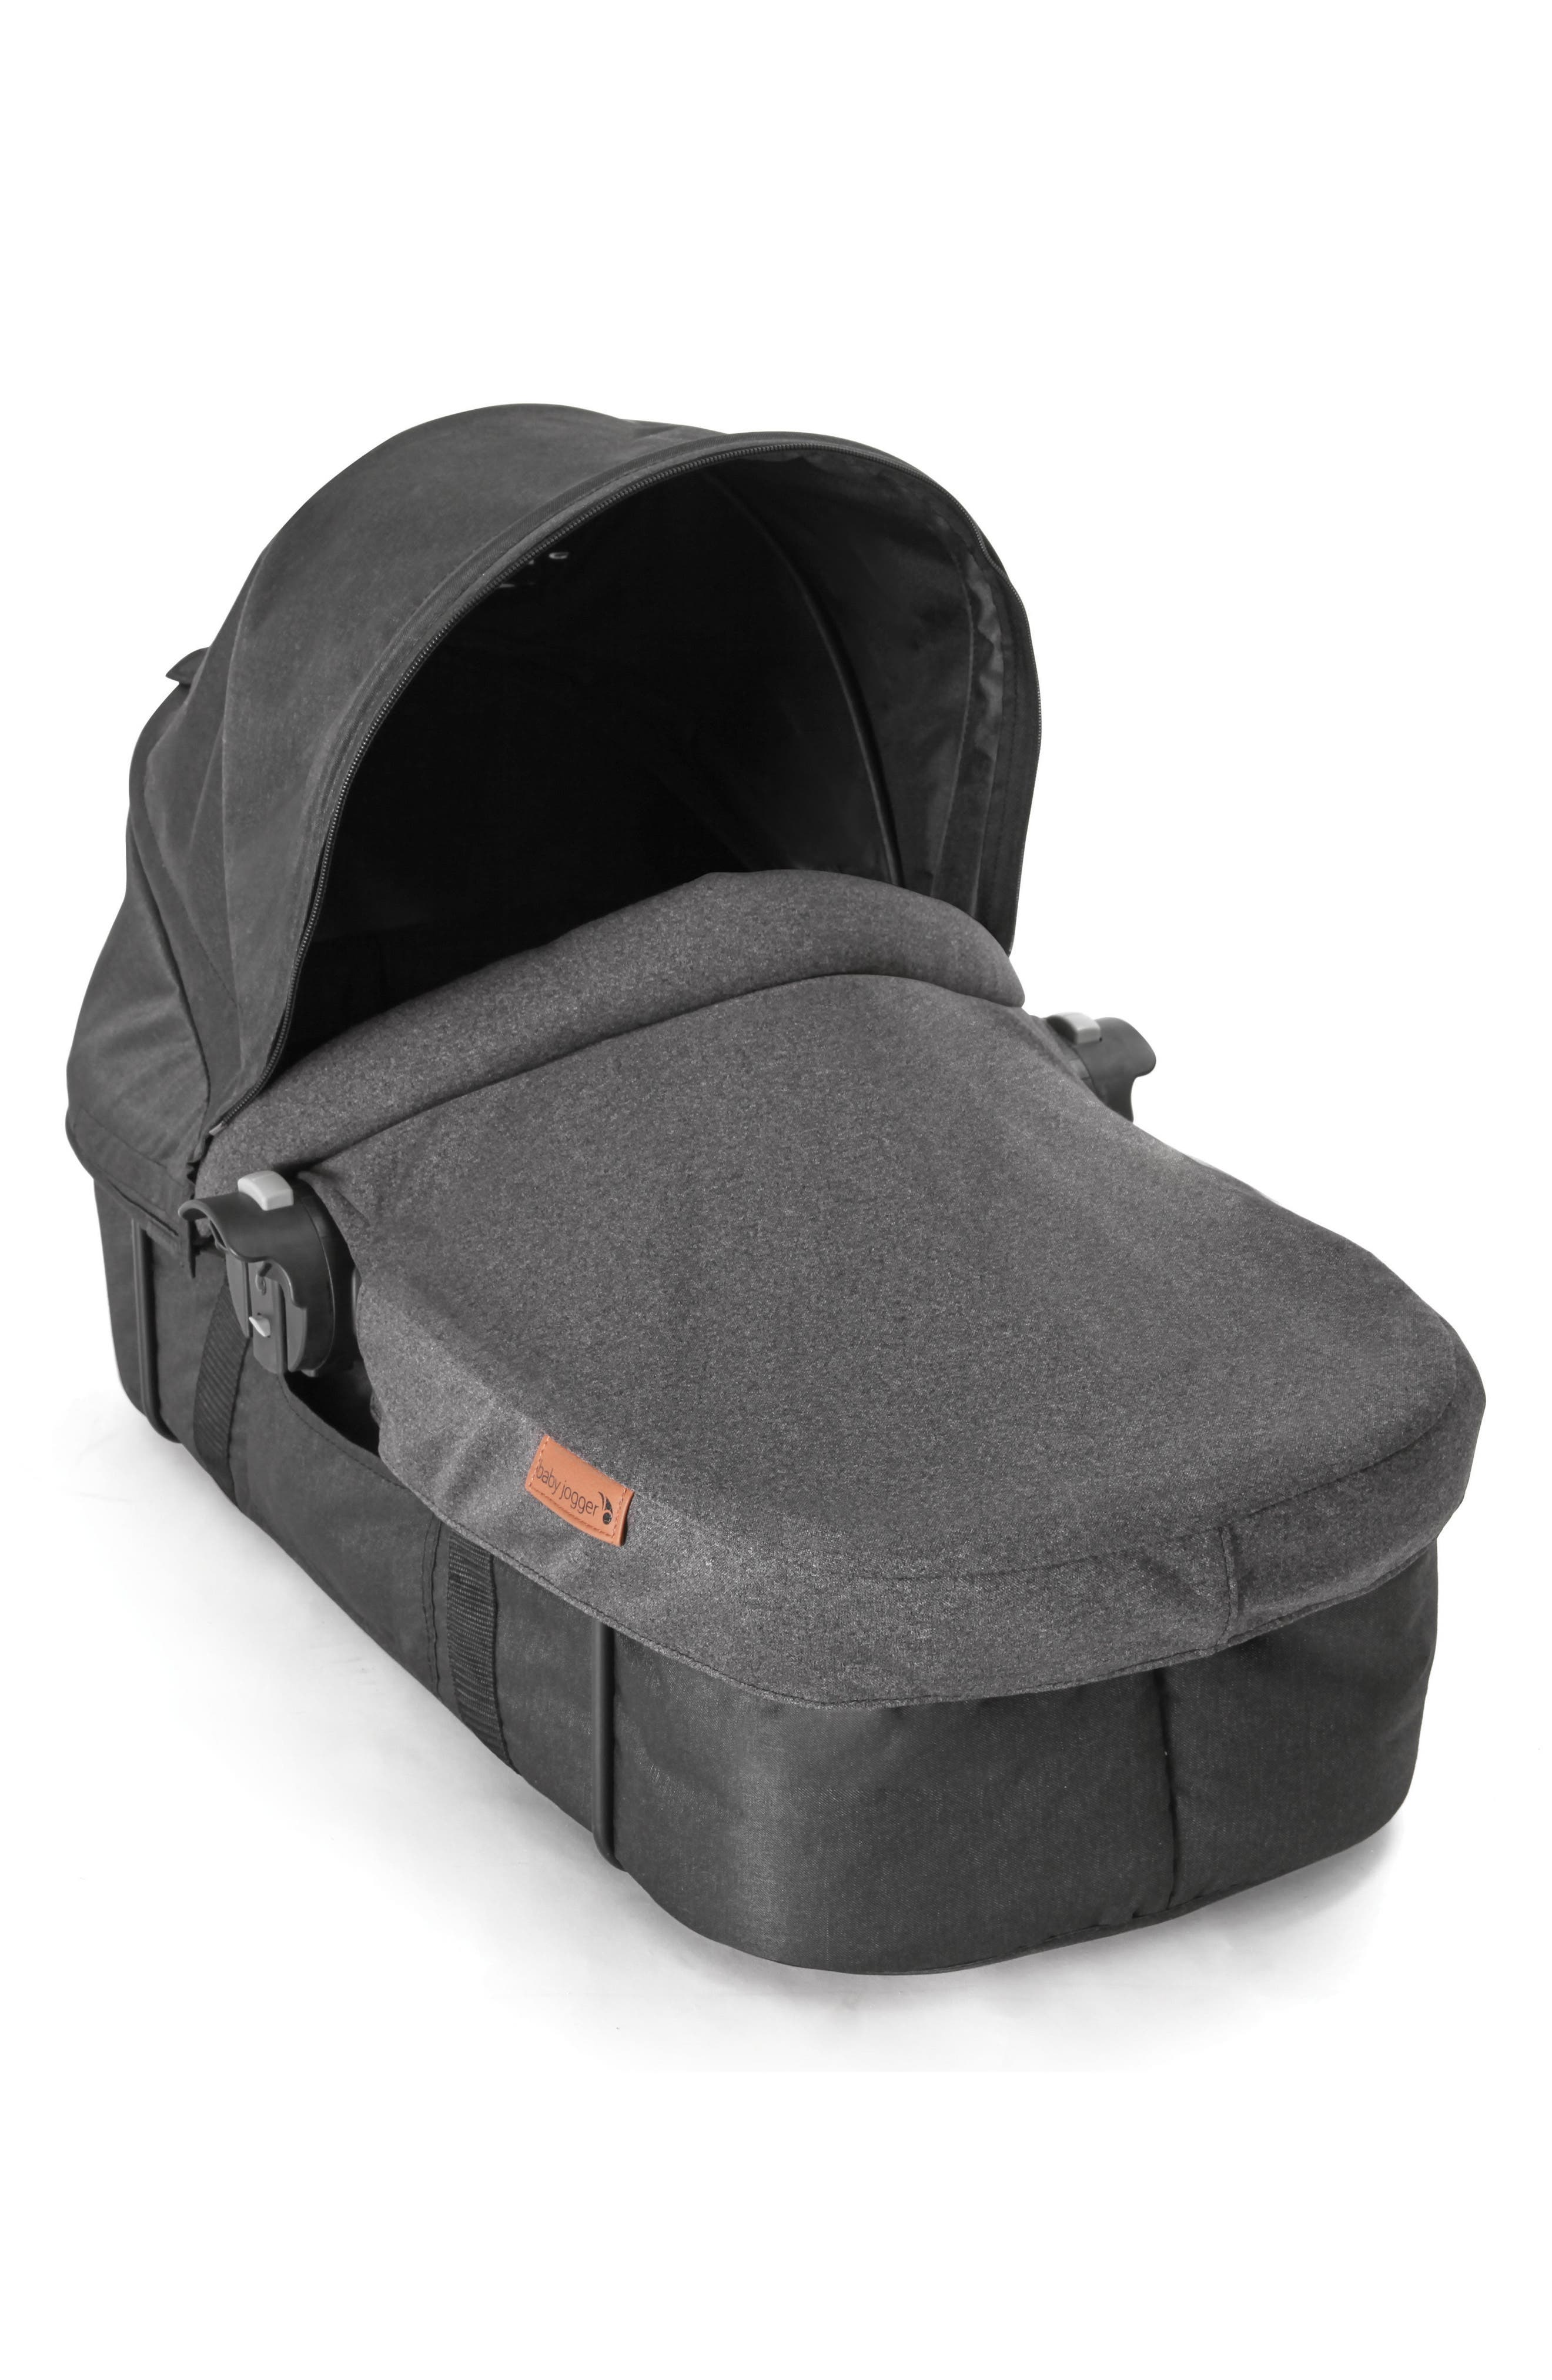 Deluxe Pram Converter Kit for City Select<sup>®</sup> 2018 Stroller,                             Main thumbnail 1, color,                             020